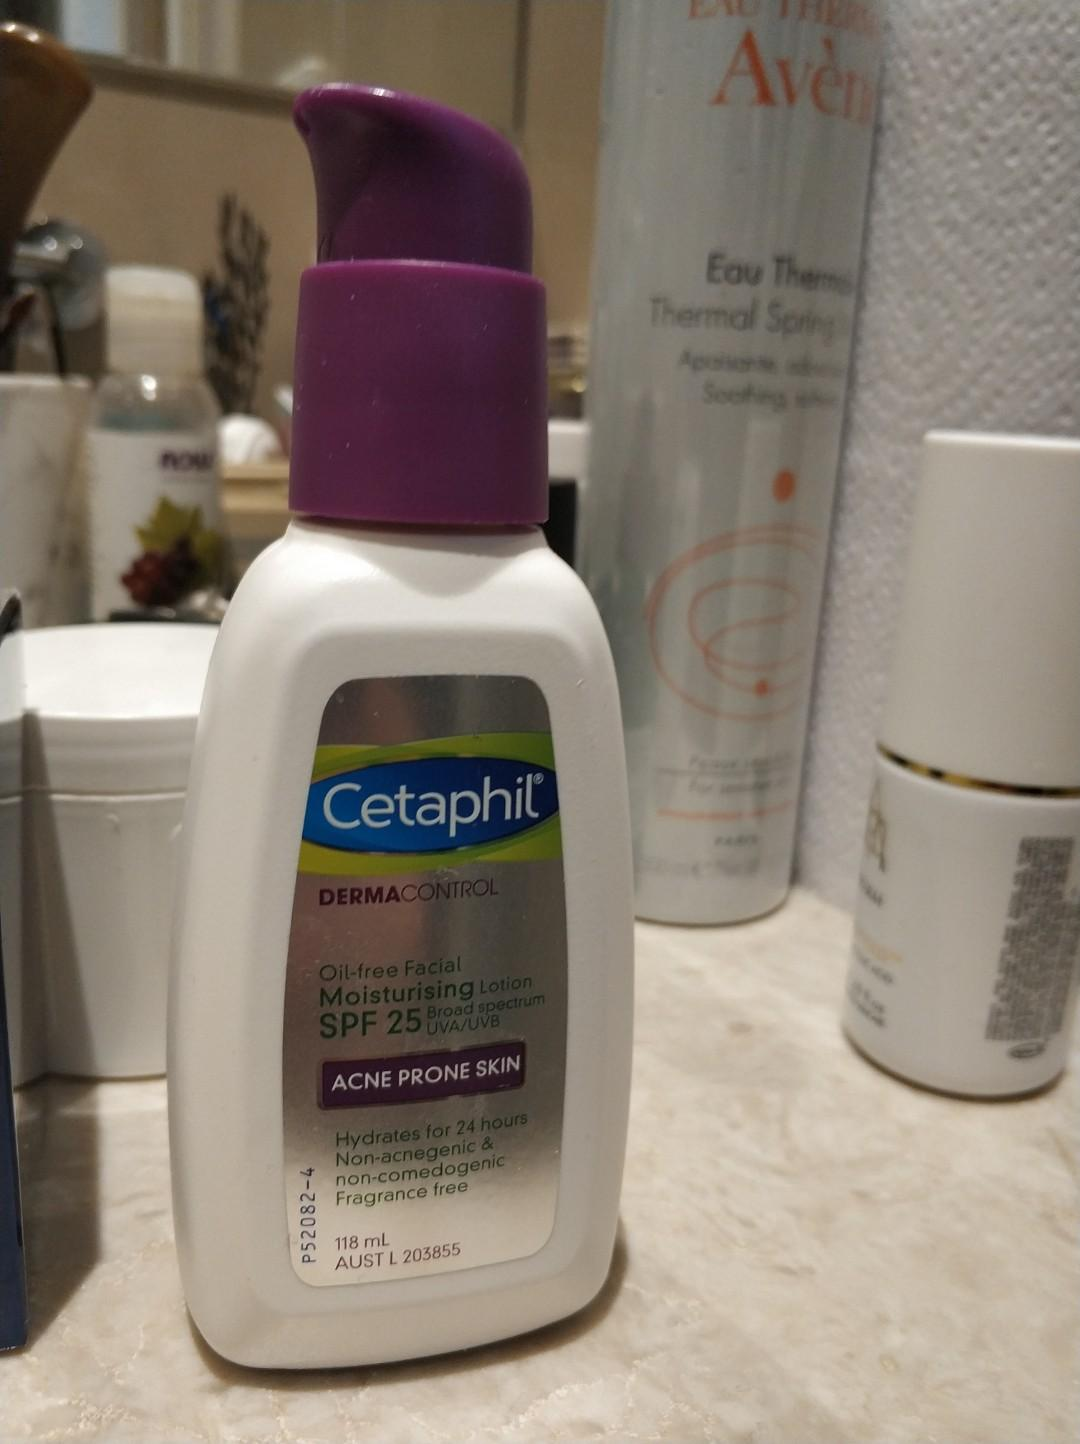 Cetaphil DermaControl Moisturising Lotion with SPF25+